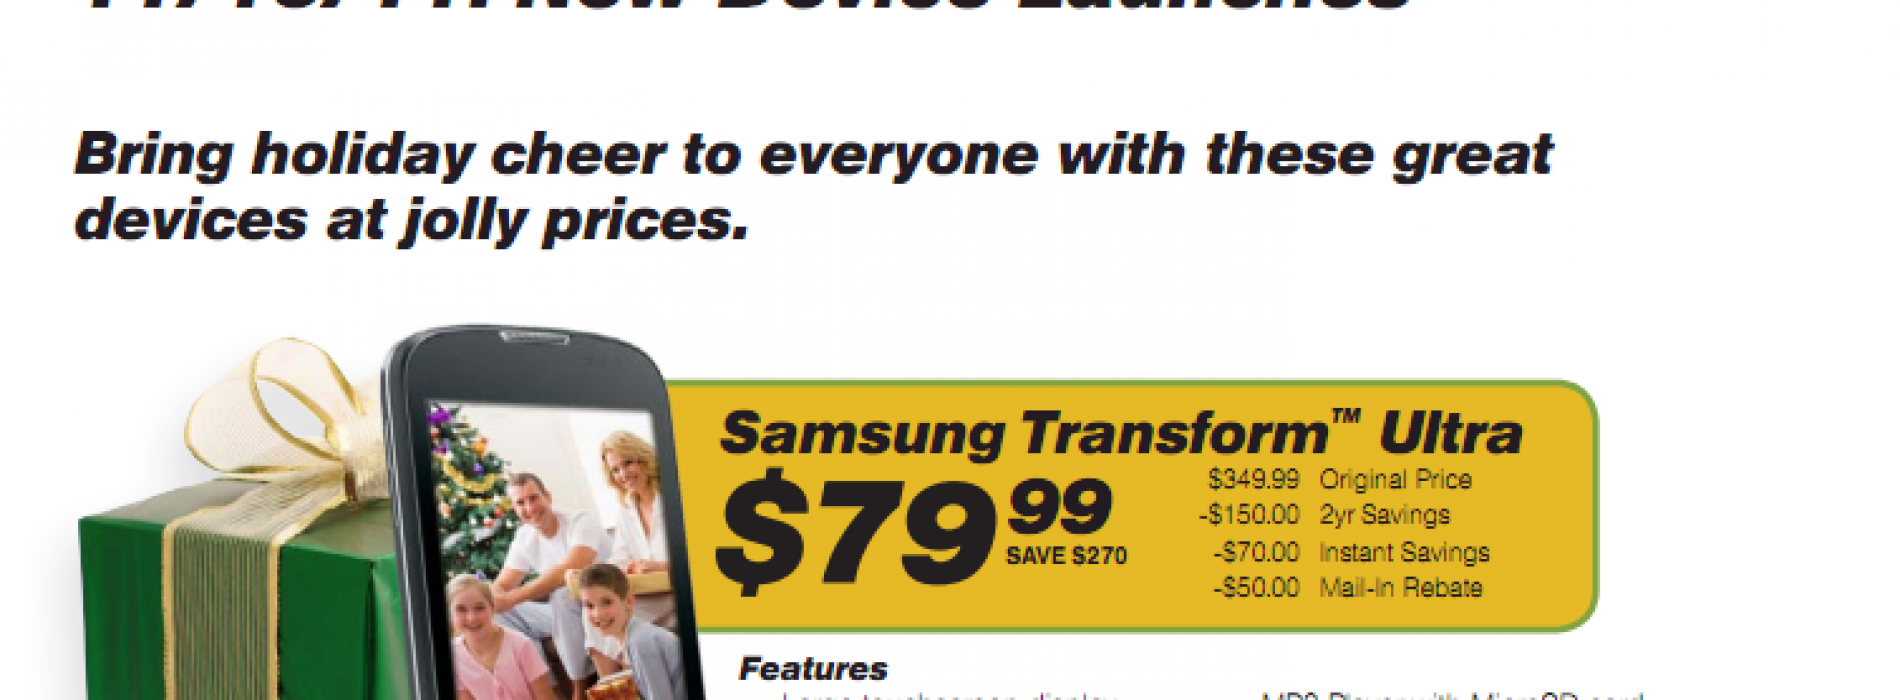 Sprint set to offer $80 Samsung Transform Ultra on November 13